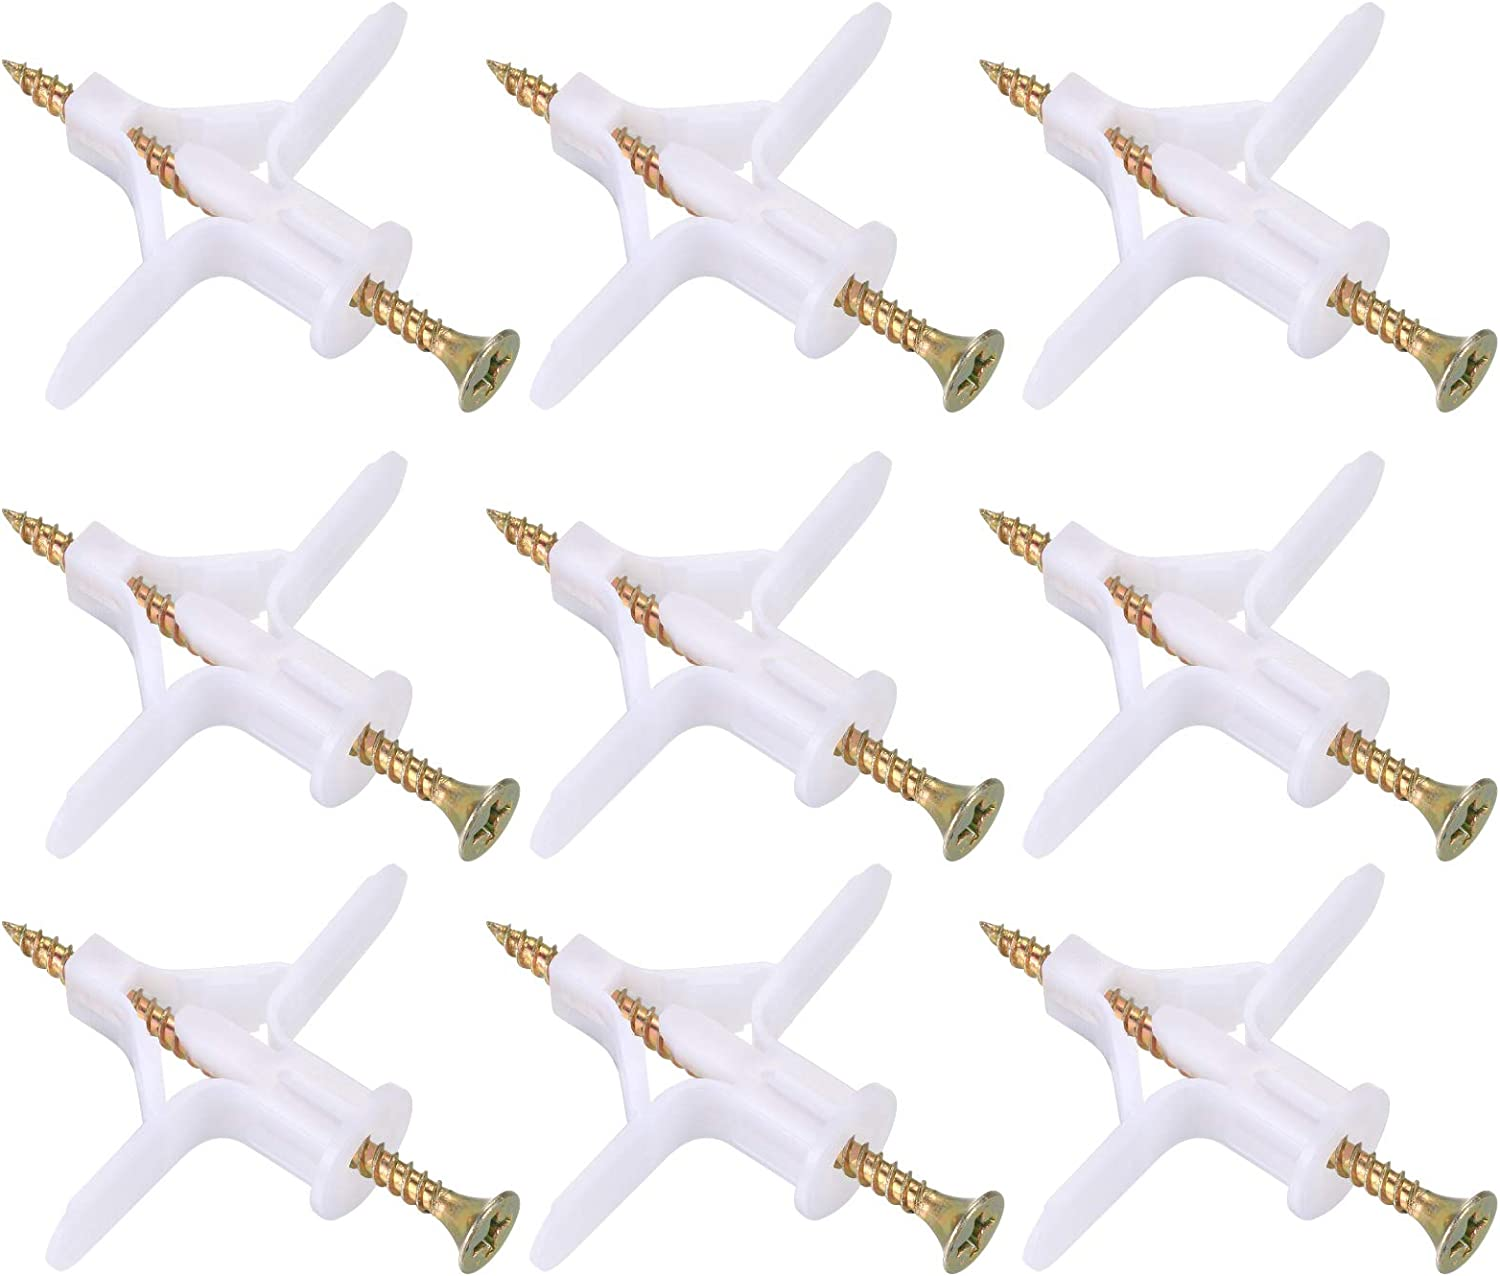 50PCS Plasterboard Wall Plugs Plastic Wall Expansion Tube Anti Rotate Plasterboard Heavy Duty Fixings Plugs with 50 Countersunk Screws Set for TV Wall Brackets